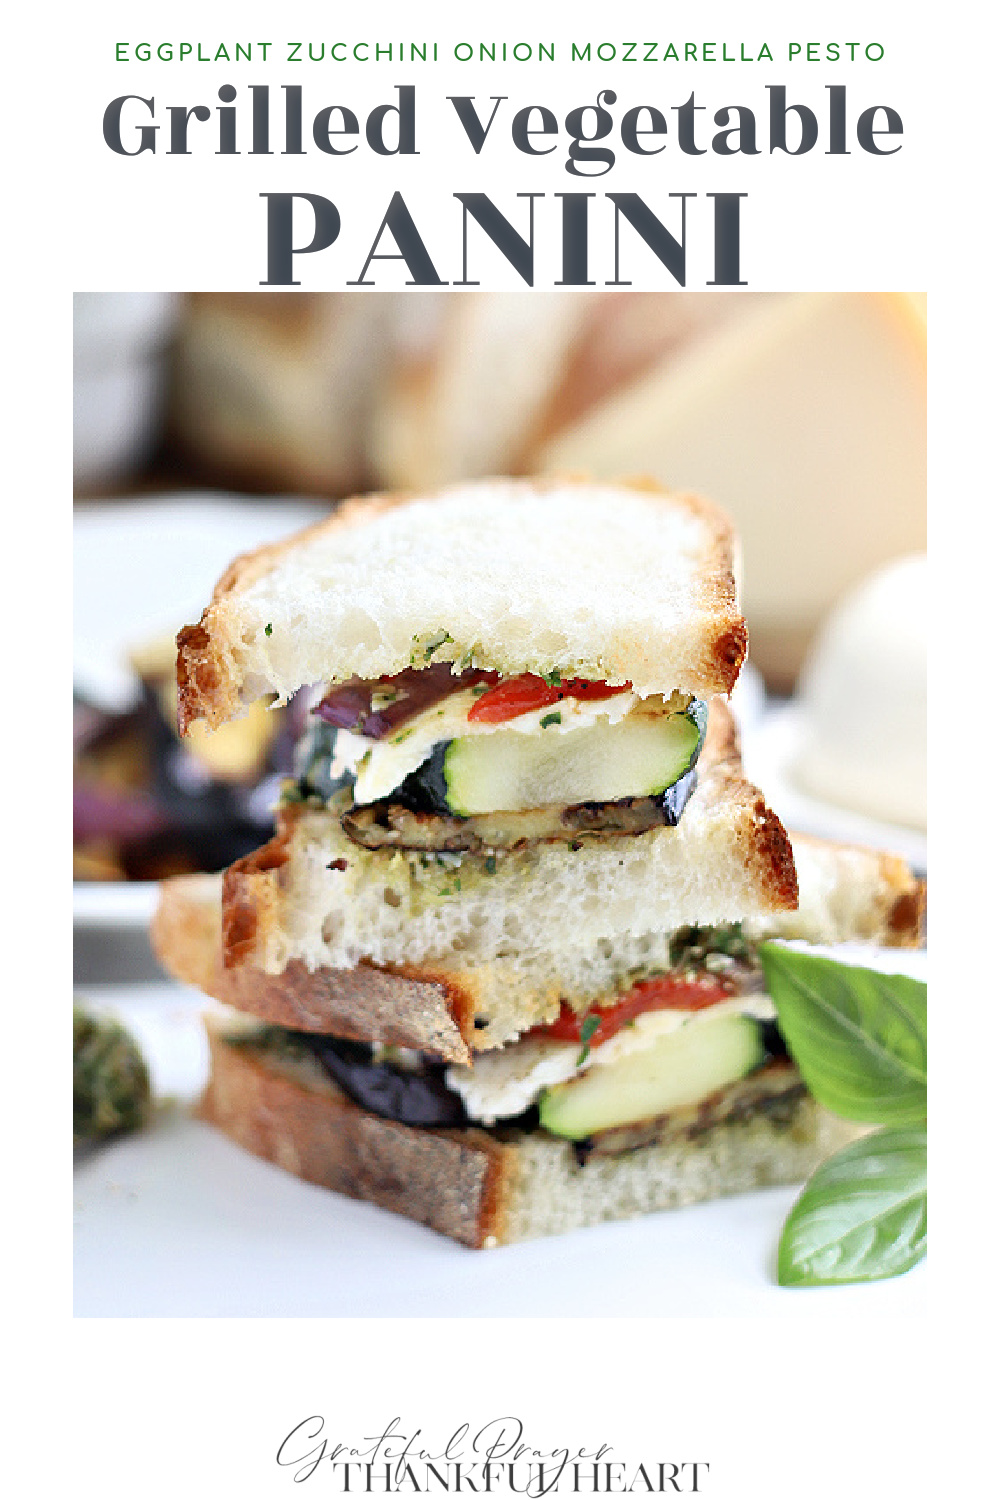 Grilled vegetable panini with eggplant, zucchini & onions, fresh basil pesto, mozzarella & roasted peppers is a tasty, low calorie sandwich.